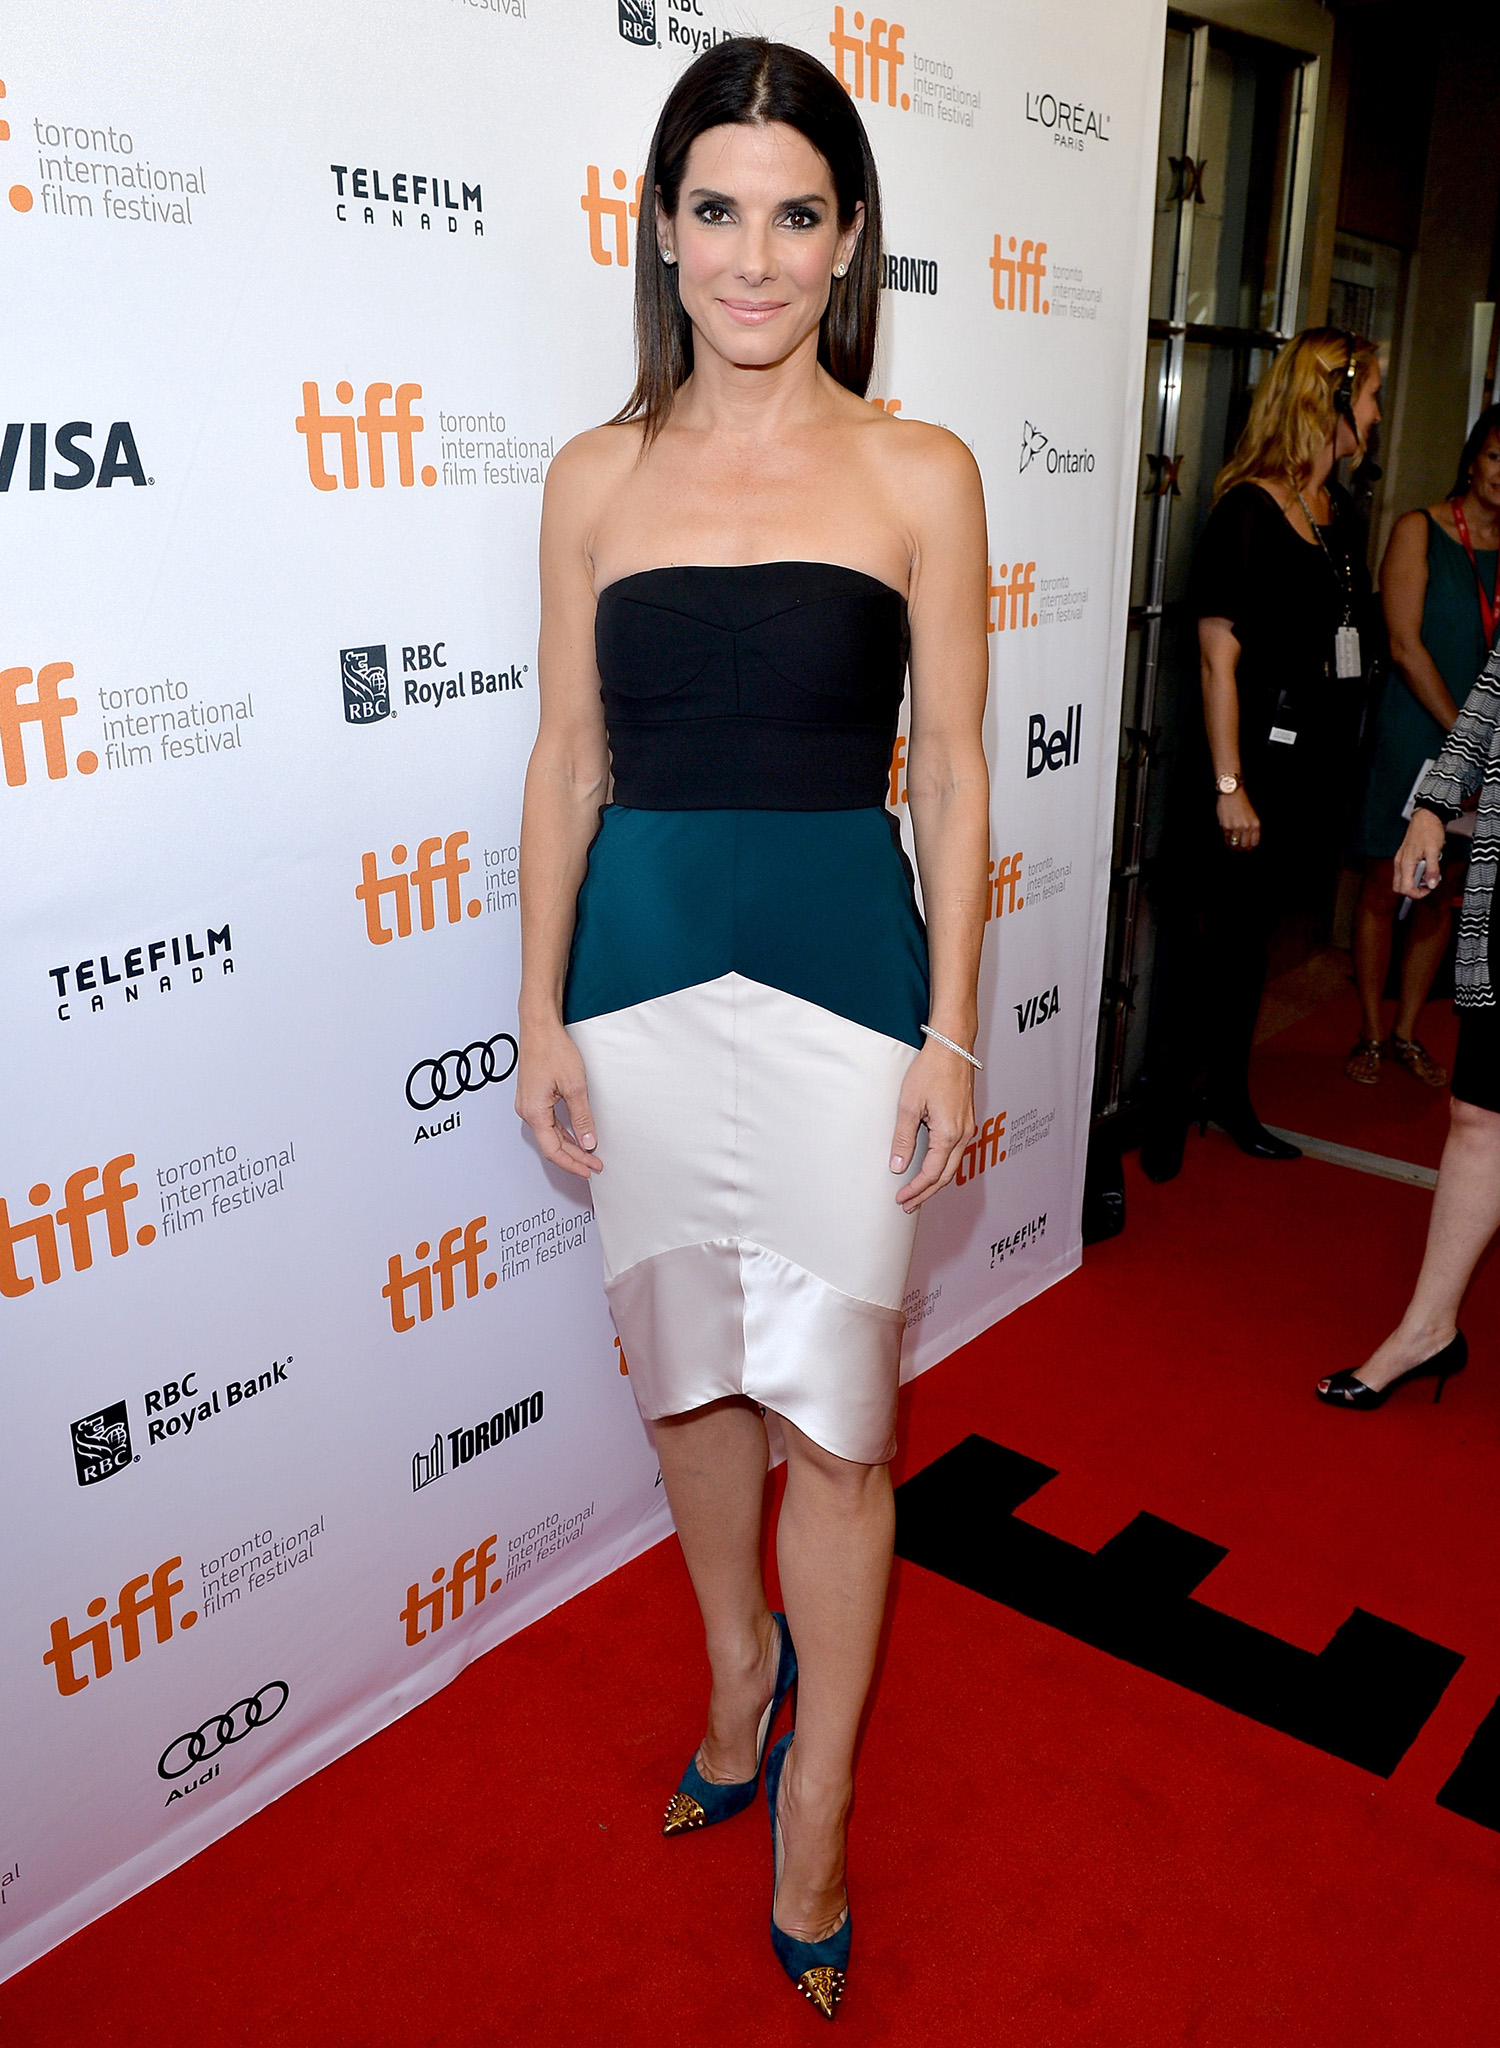 Sandra Bullock at TIFF. (George Pimentel/WireImage)